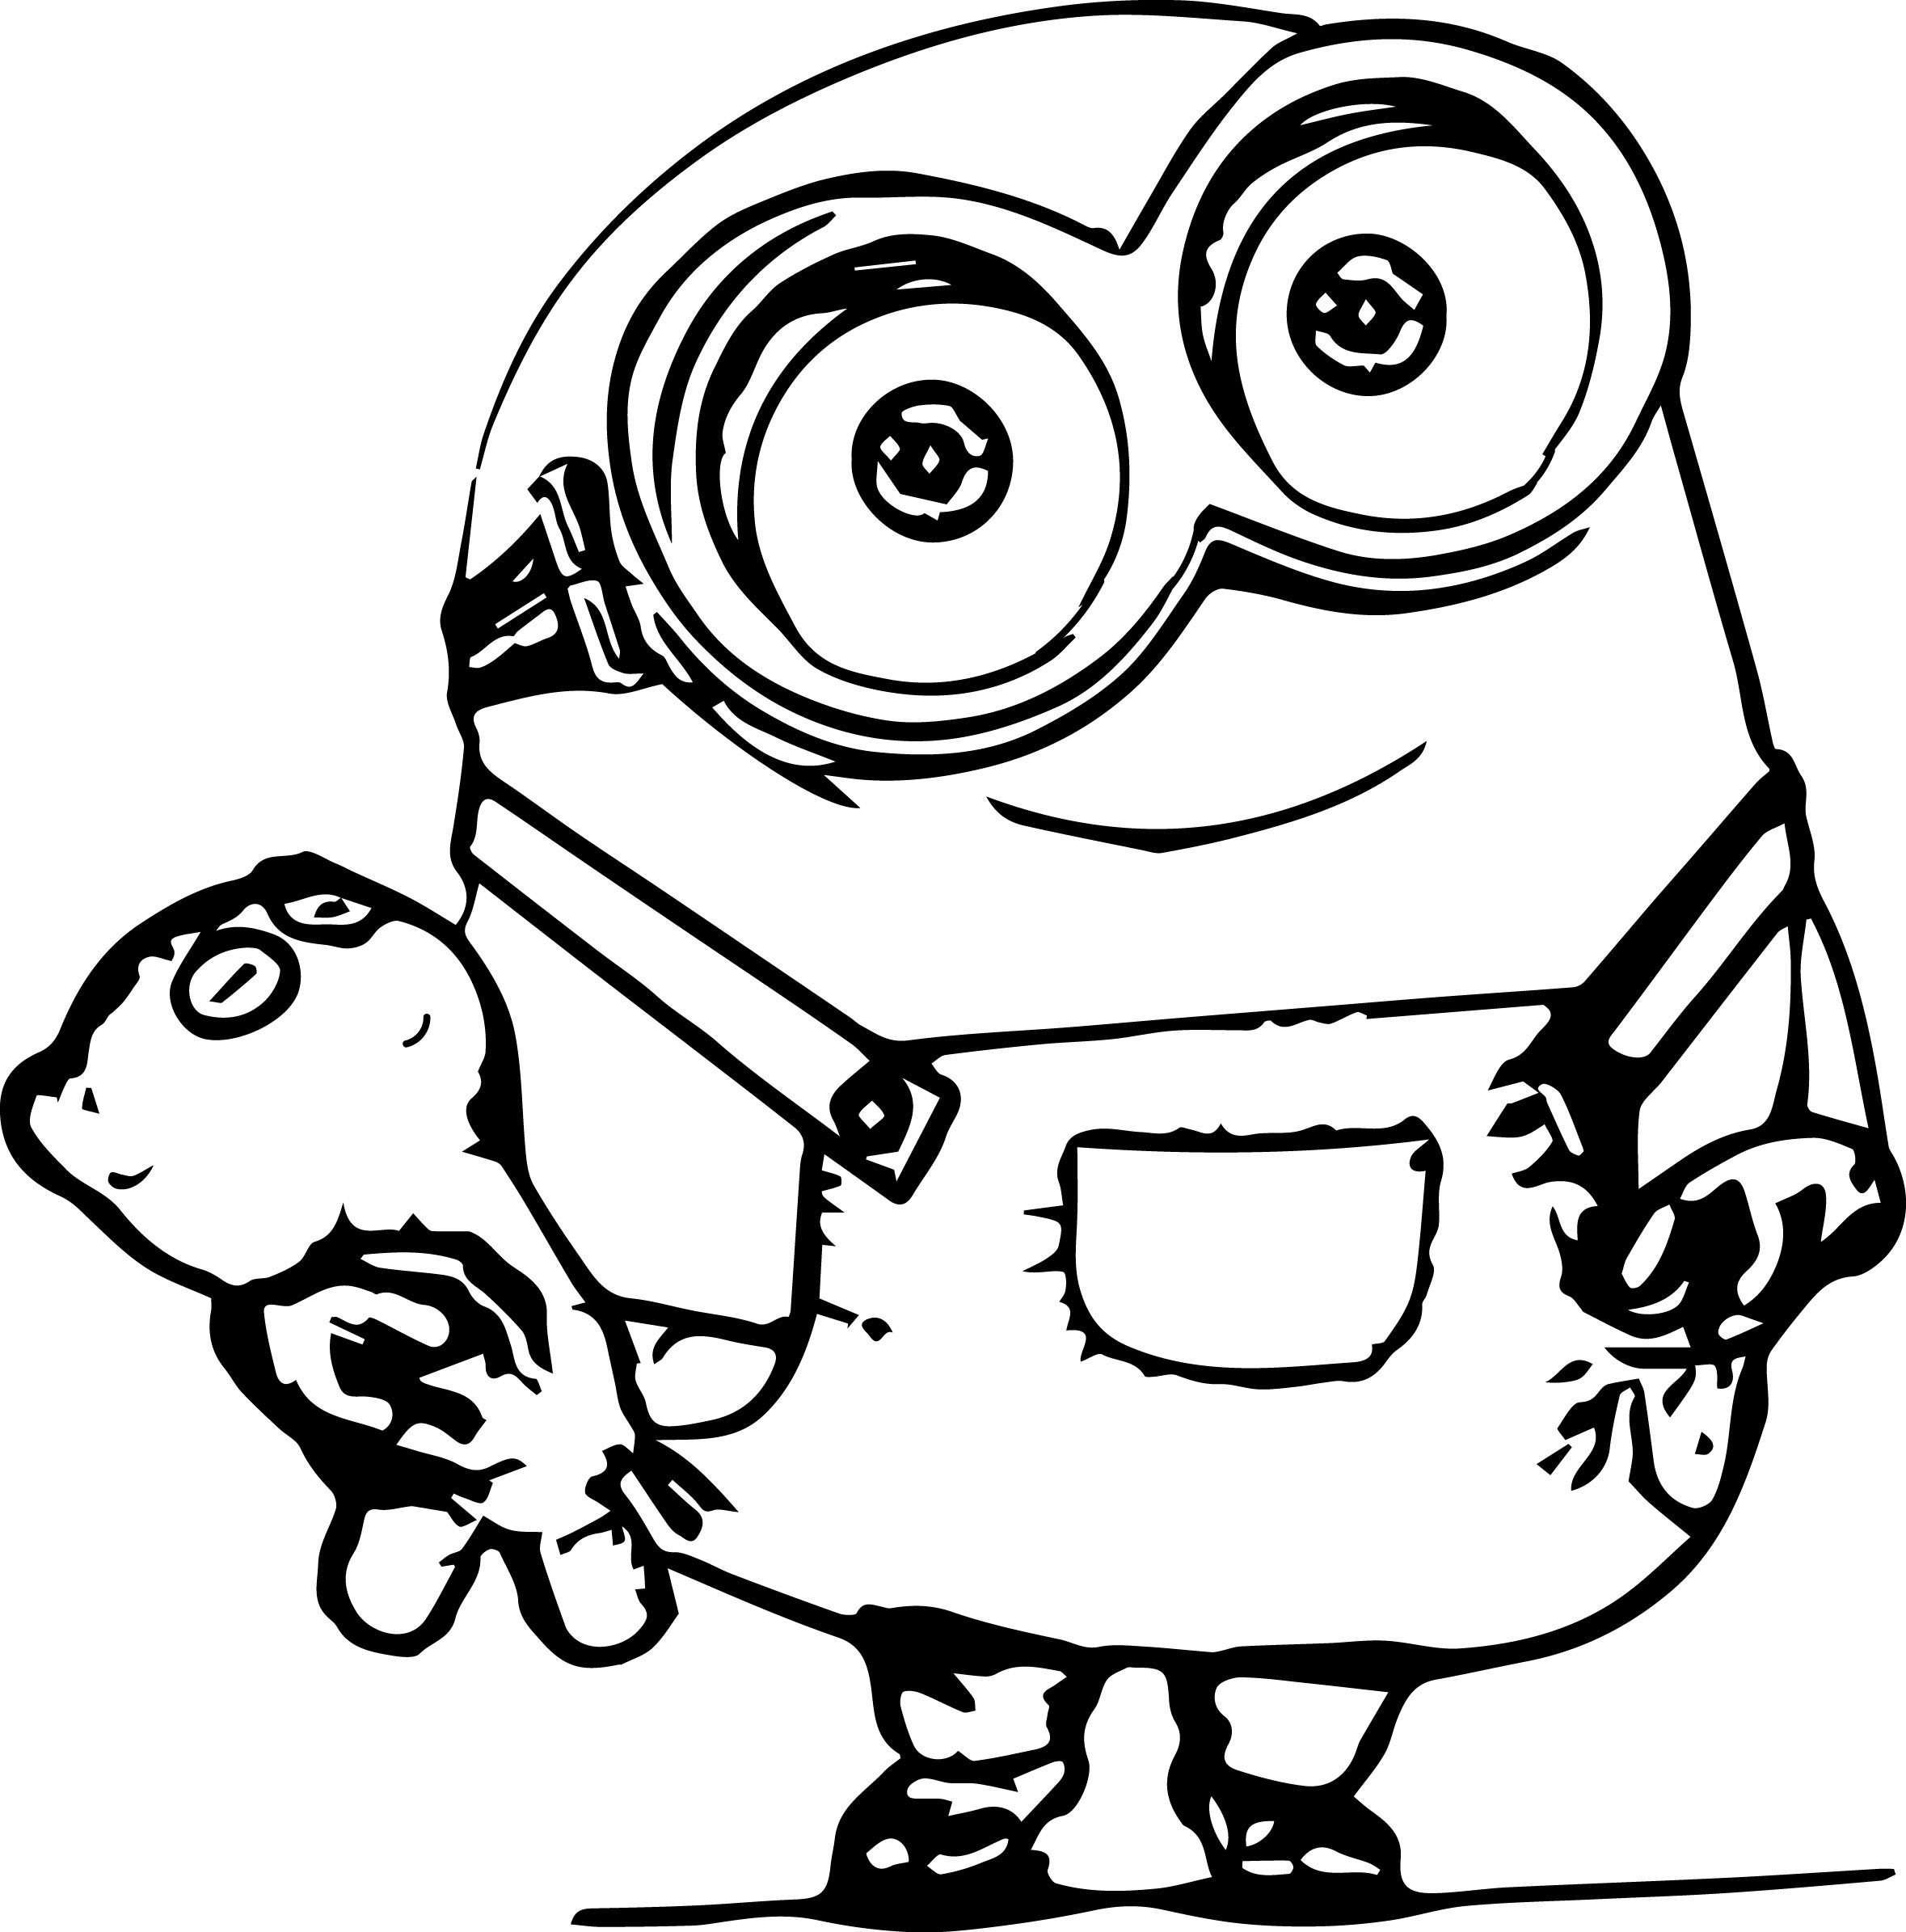 Minions Coloring Pages Bob  Bob the minions coloring pages ColoringStar